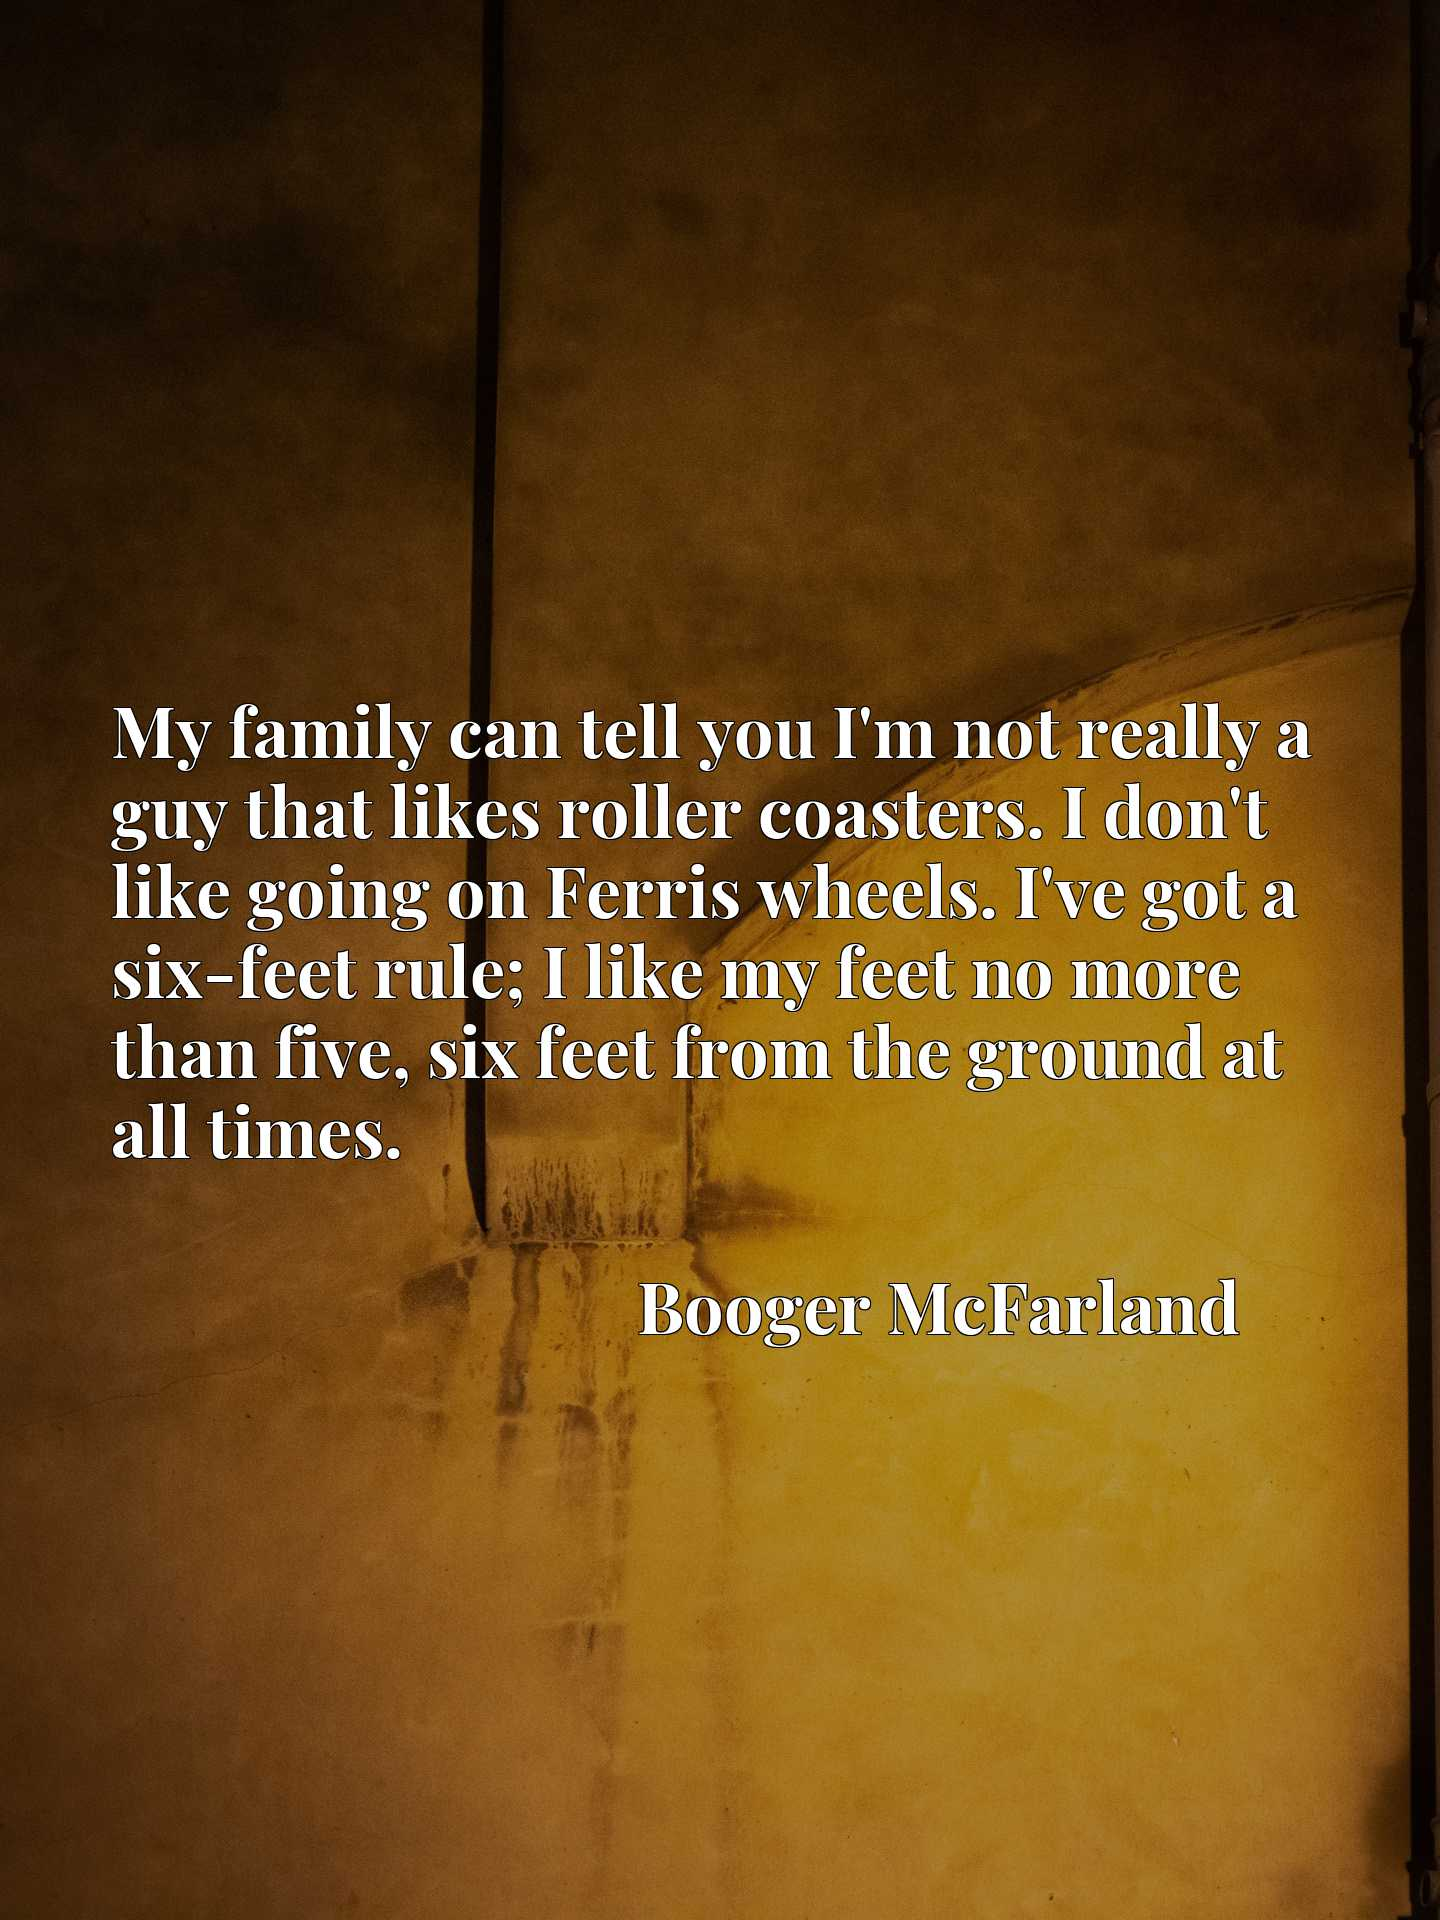 My family can tell you I'm not really a guy that likes roller coasters. I don't like going on Ferris wheels. I've got a six-feet rule; I like my feet no more than five, six feet from the ground at all times.